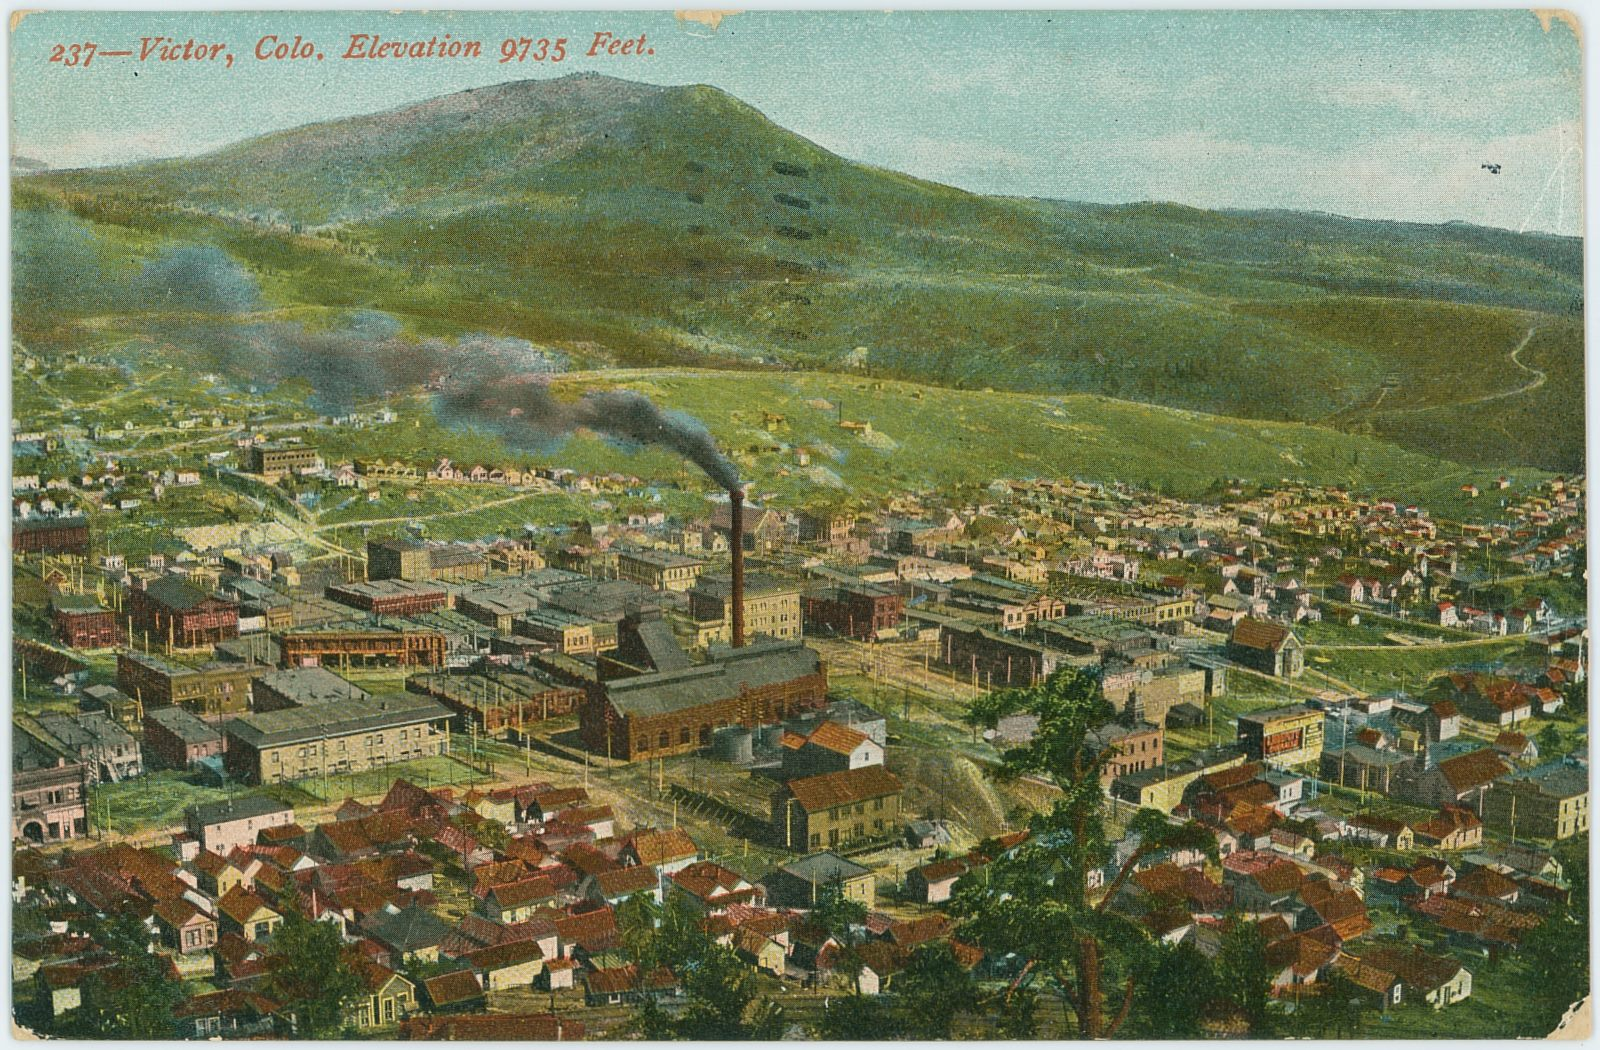 Another view of Victor from Squaw Mountain, with the Gold Coin mine nearly in center of view. Photo is from before April 1906 as I have seen a postcard with the date using this view.